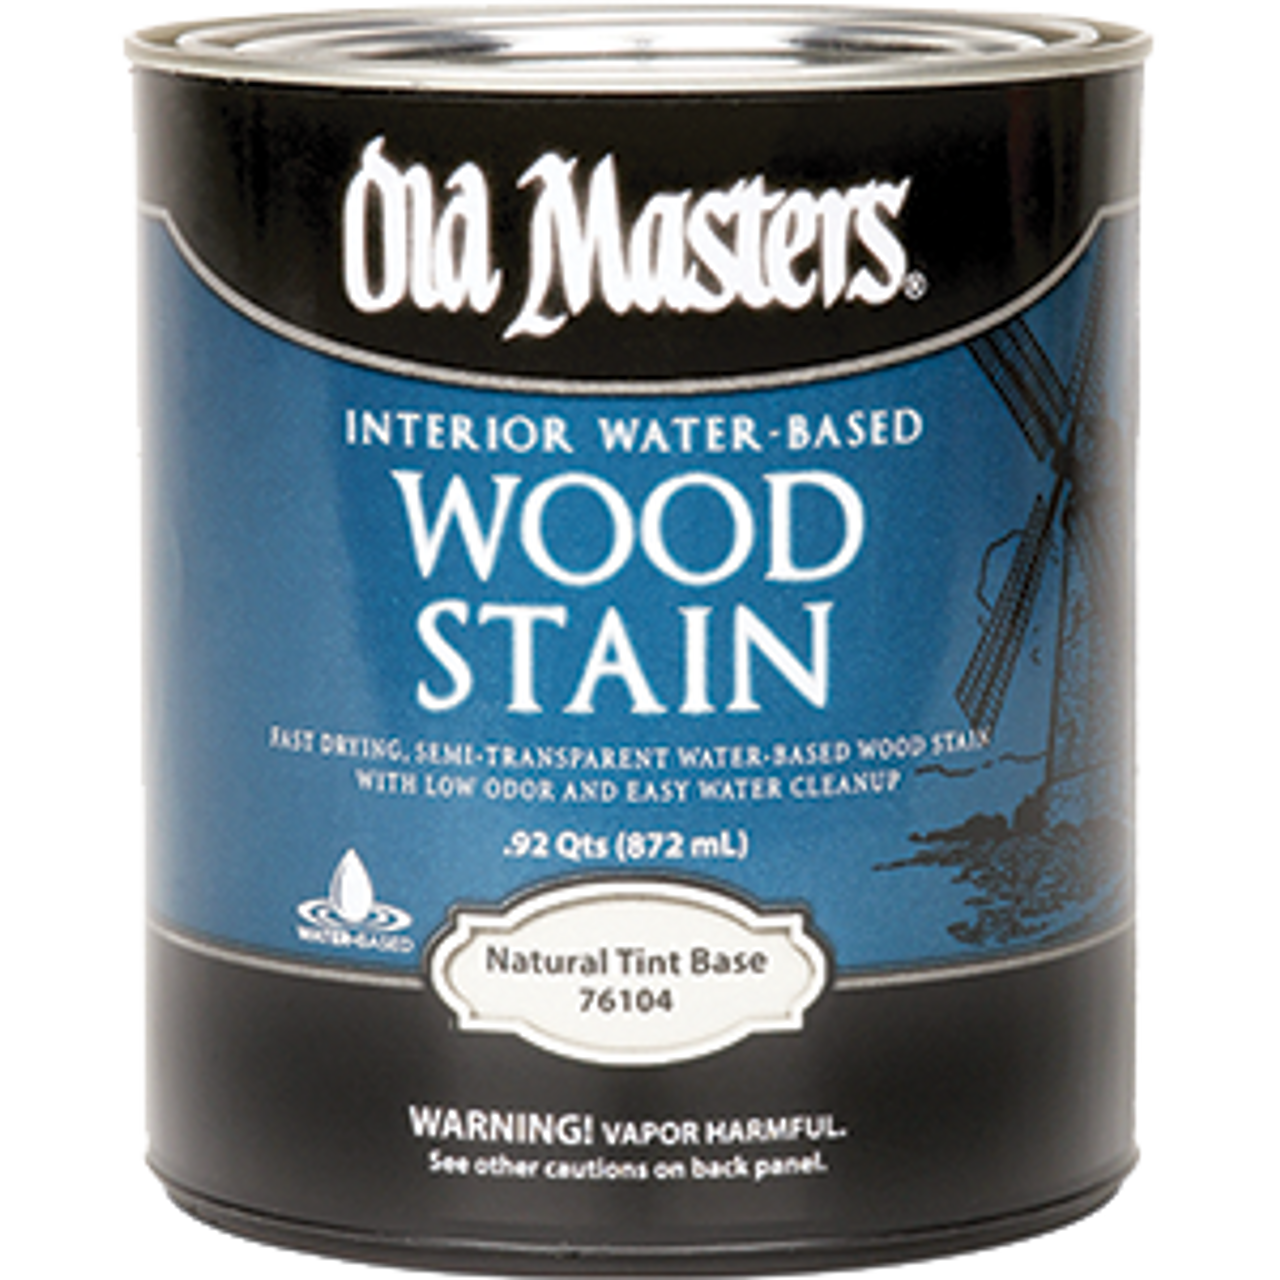 OLD MASTERS 76104 QT H2O INTERIOR WOOD STAIN TINT BASE